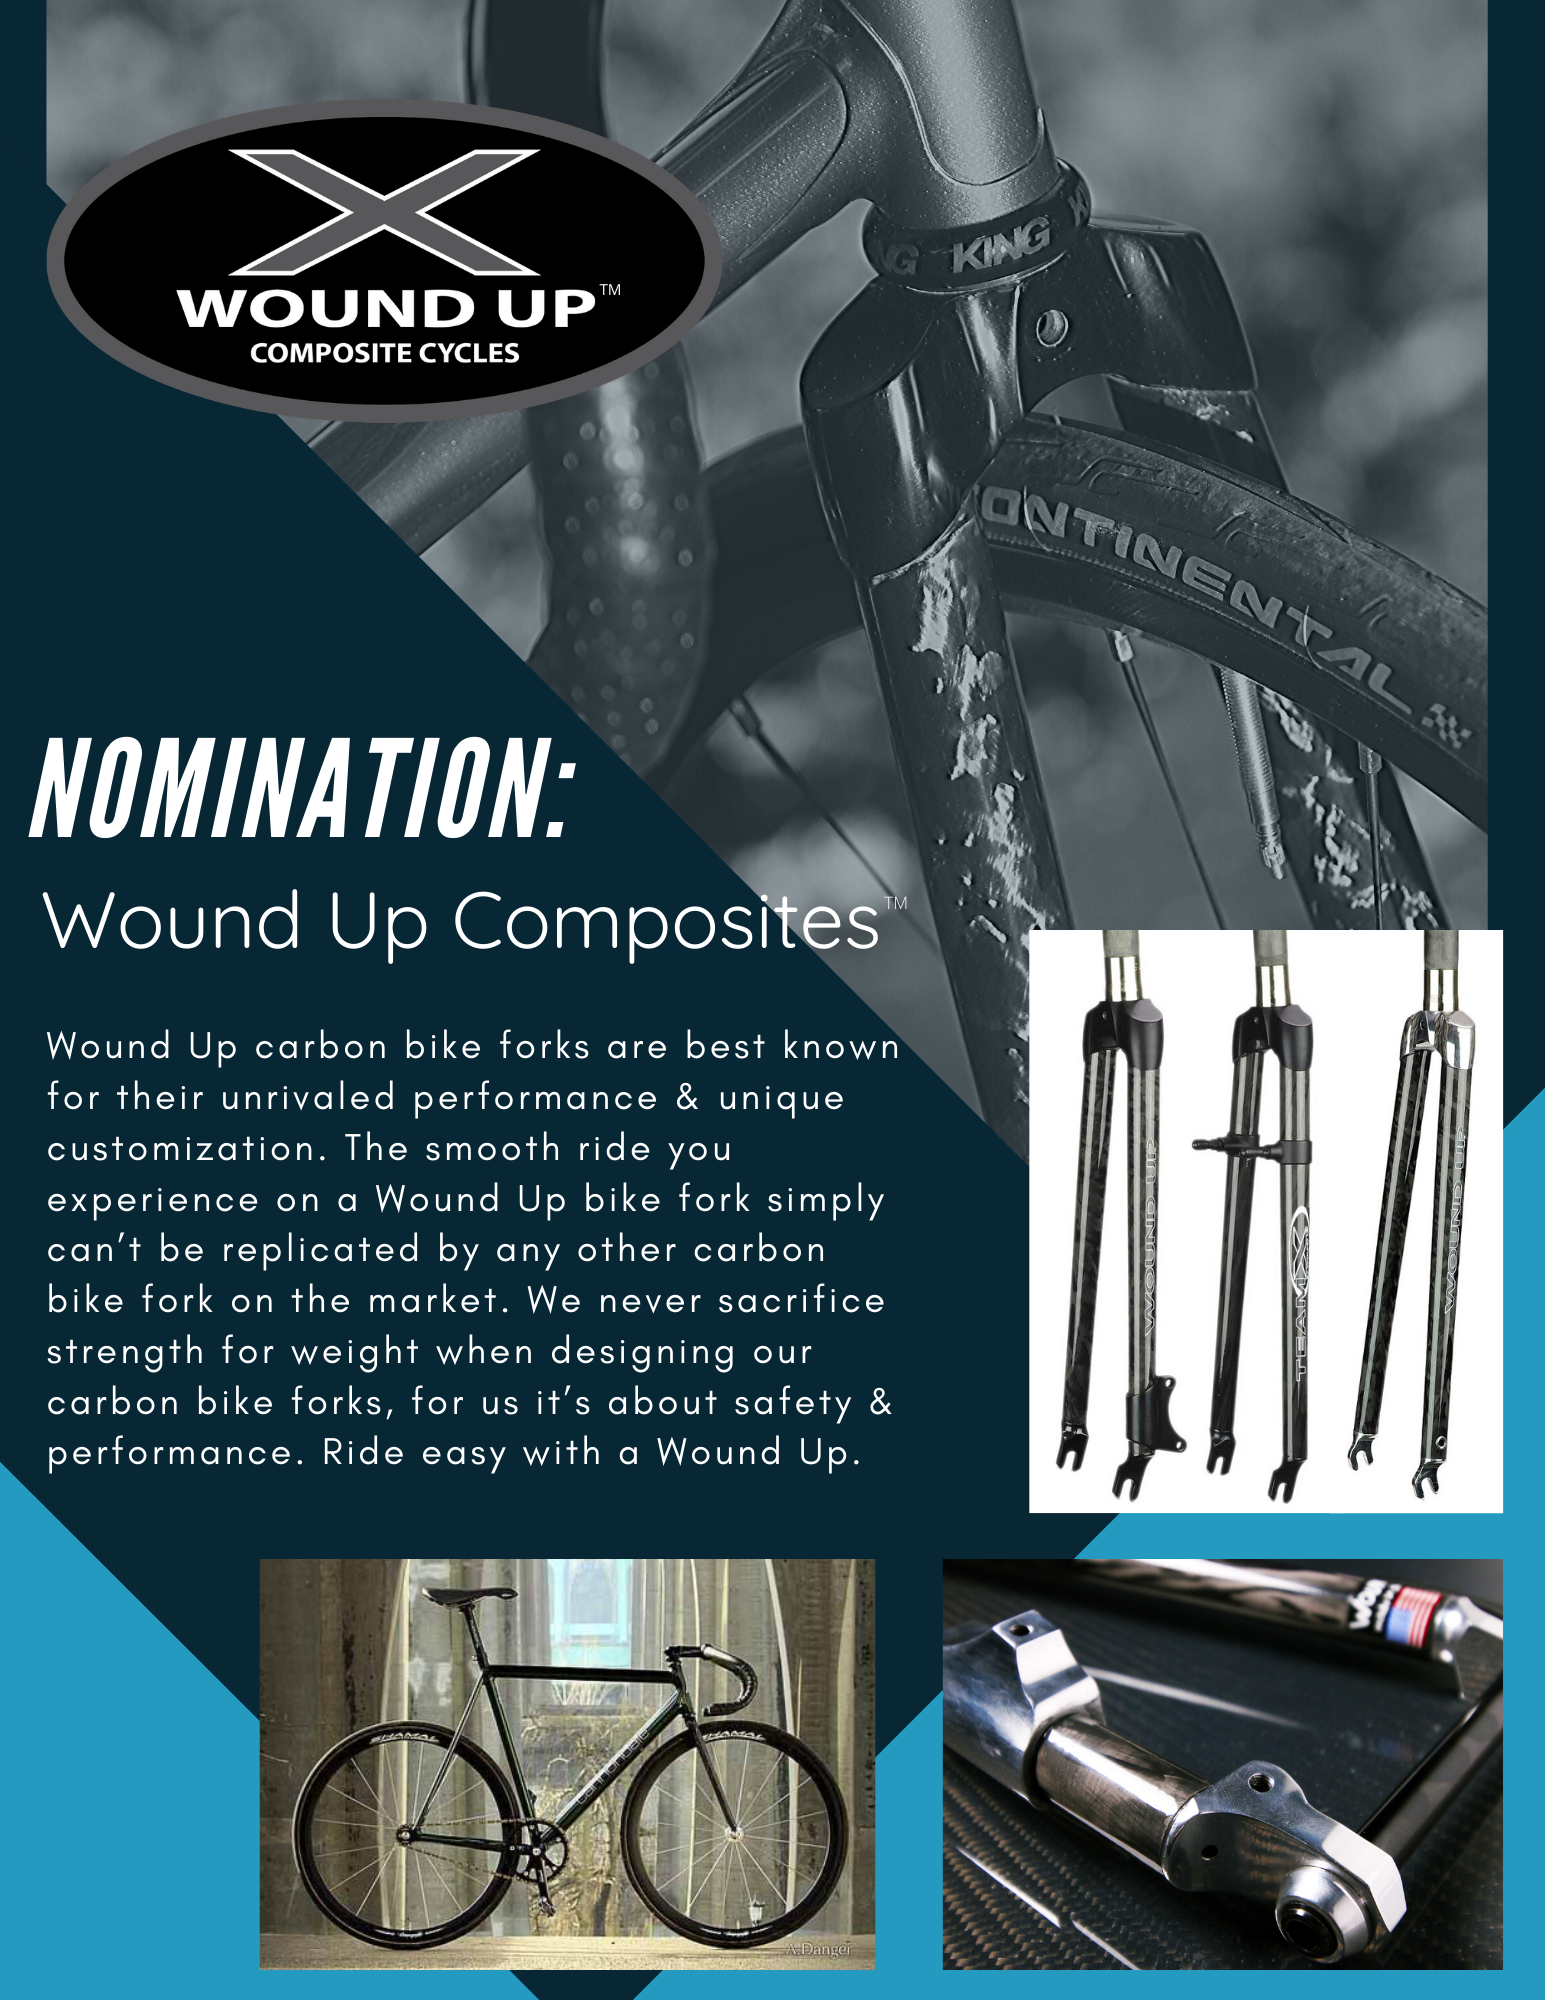 wound up composite cycles